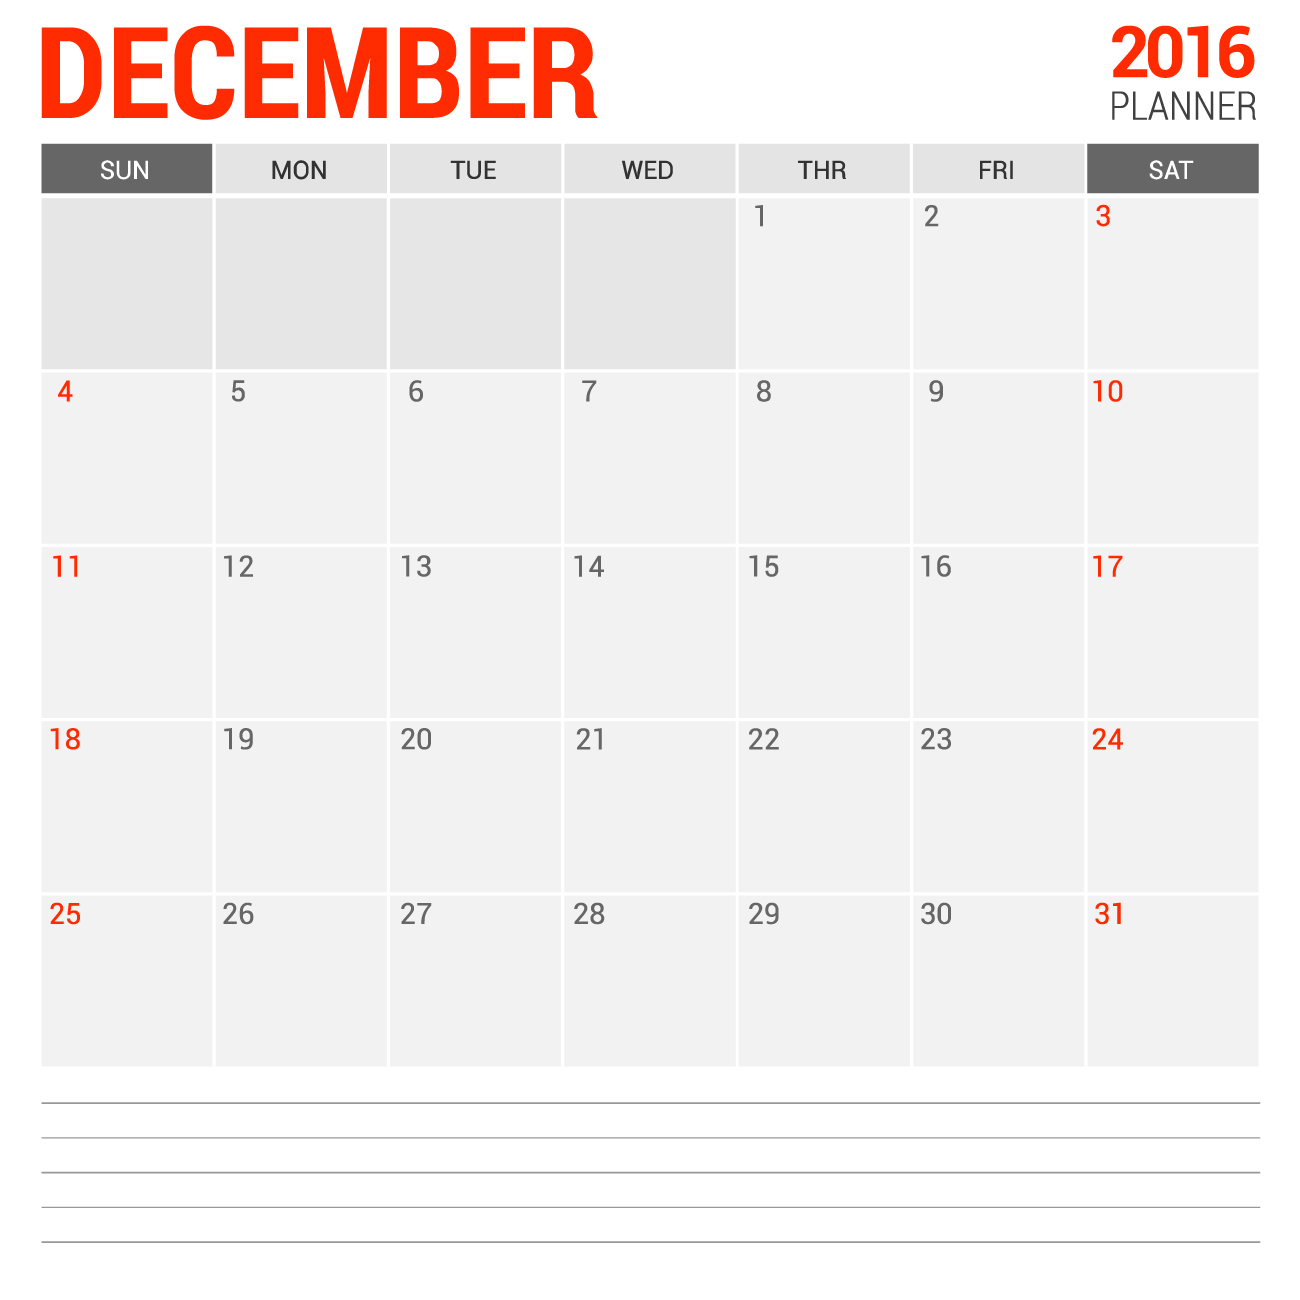 photograph relating to Printable Monthly Calendar December named Absolutely free printable month to month Calendar - December 2016 2016 Blank